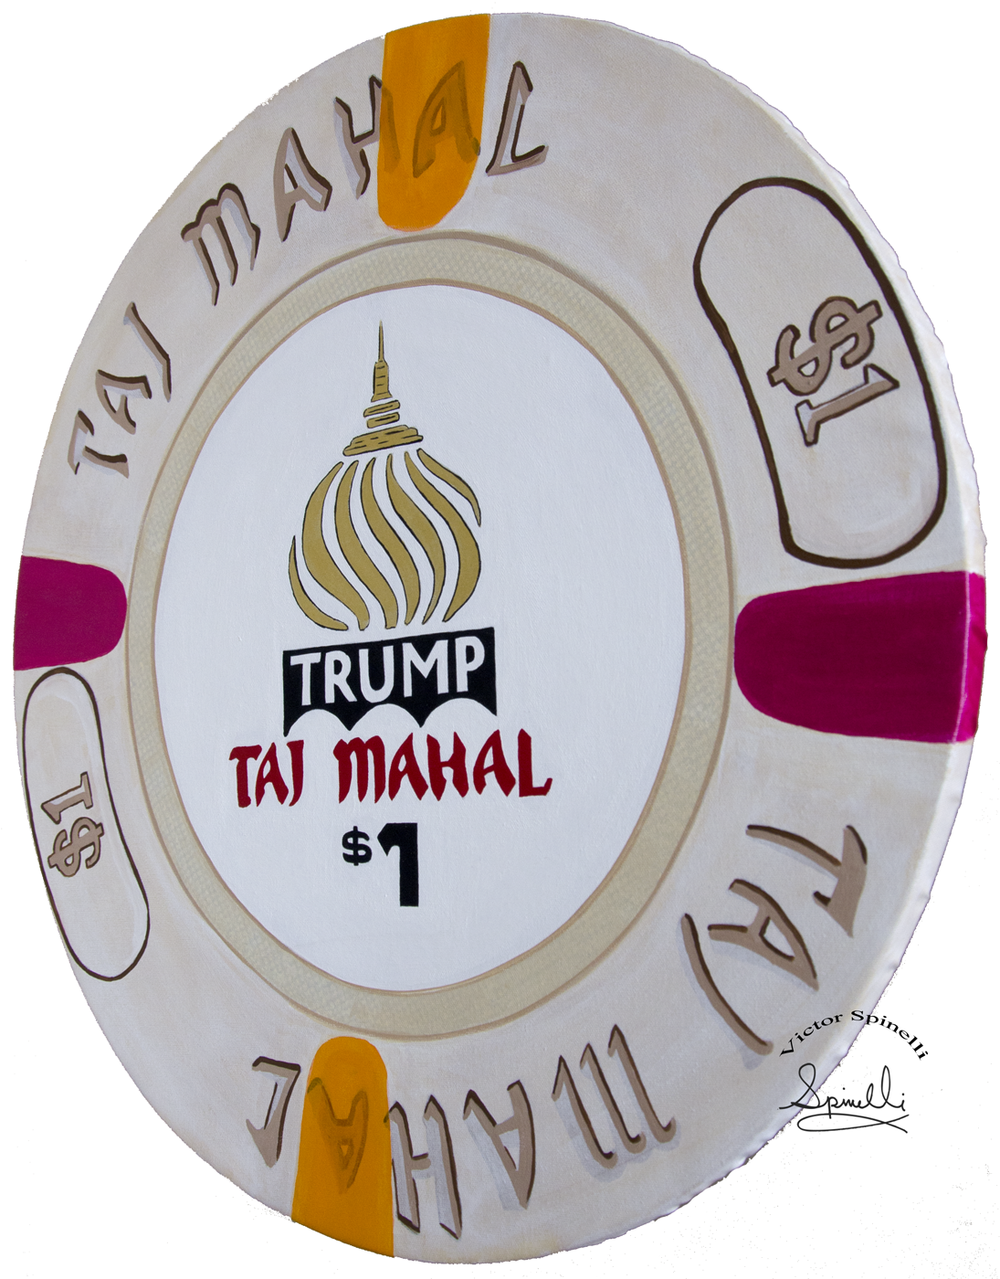 It was only a matter of time before I painted this chip. I  guess Donald Trump is the only US President that put his name on a casino. This  piece is the newest addition to my giant Casino Chips Series. Hand  Painted & UNIQUE.  Acrylic on canvas and solid wood.  24 inch  diameter by 1 inch thick. .    For me,  painting and creating these giant art chips represents the human  condition of risk taking, chance and discovery. Enjoy  Please inquiry for  sales.    https://www.victorspinelli.com/new-products/